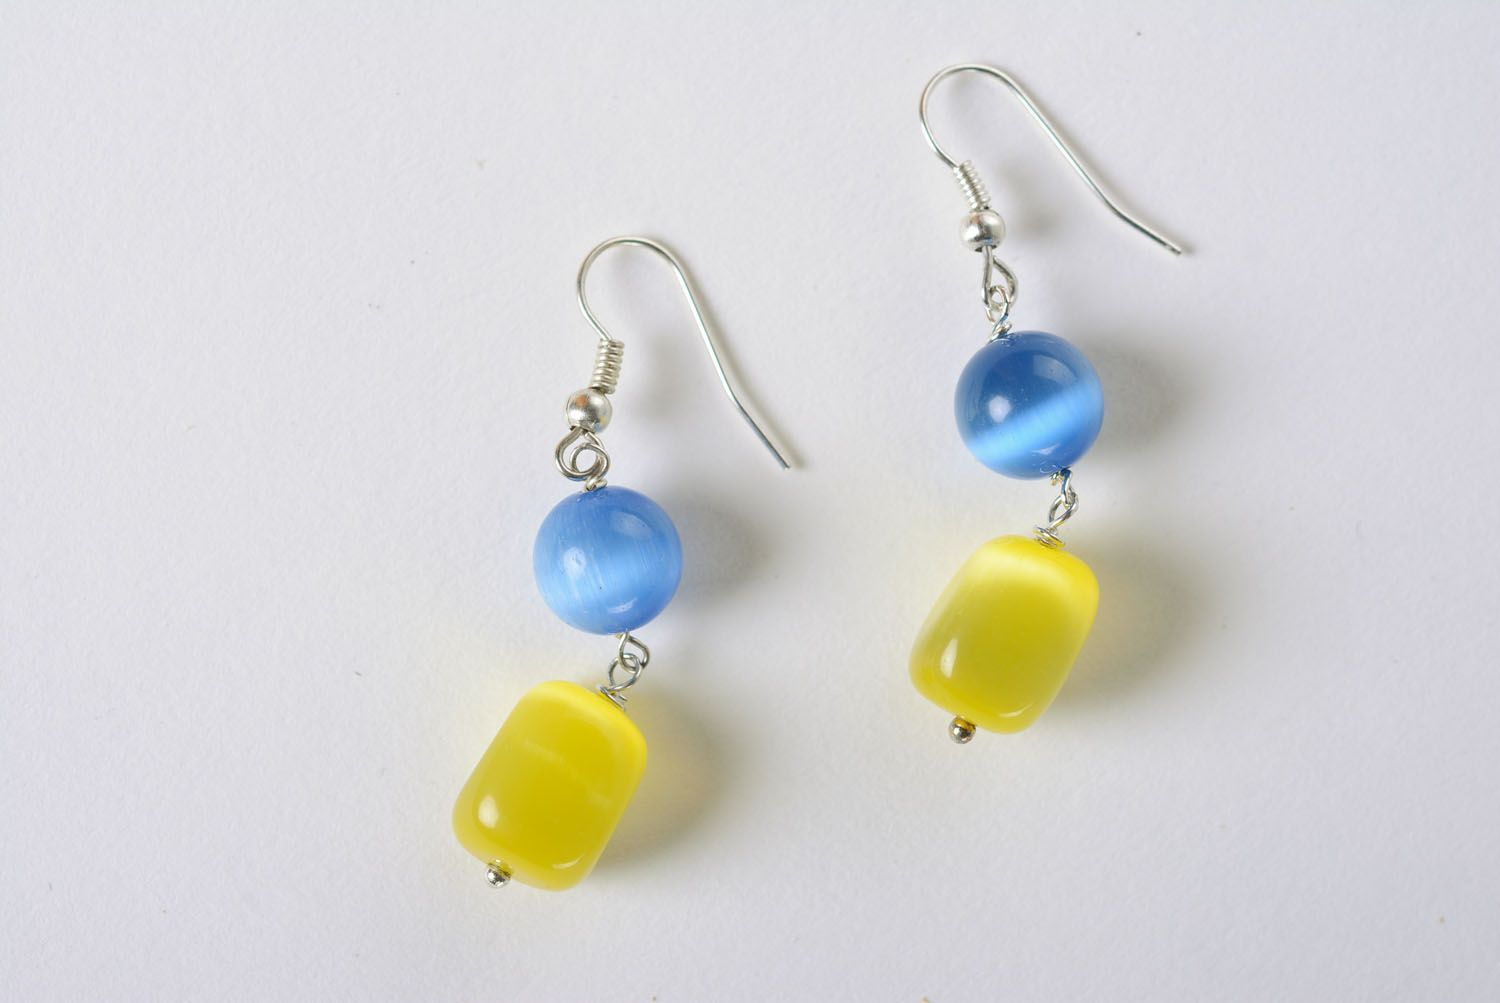 Earrings with cat's eye stone photo 2